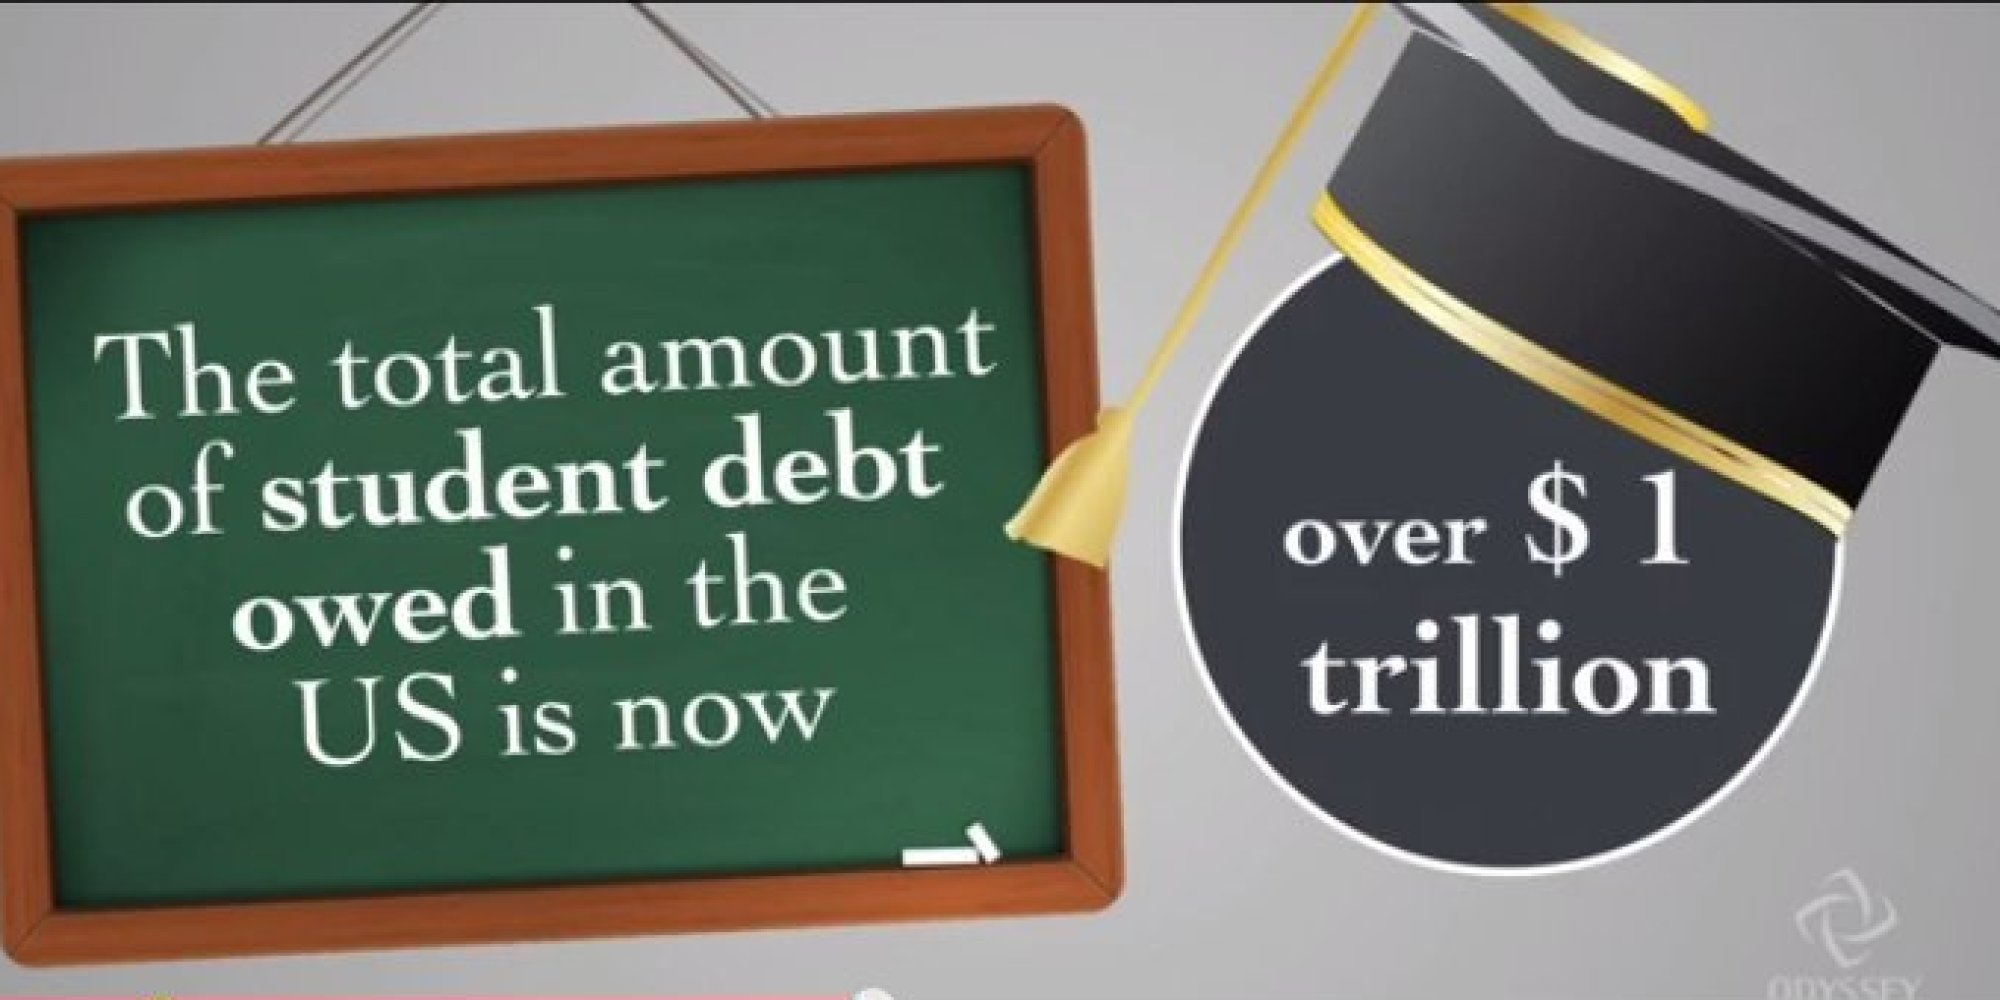 student loan debt essay Federal student loans are cheaper, more available and have better repayment terms than private student loans the interest rates on federal education loans are fixed, while the interest rates on most private student loans are variable and will probably increase over the life of the loan.